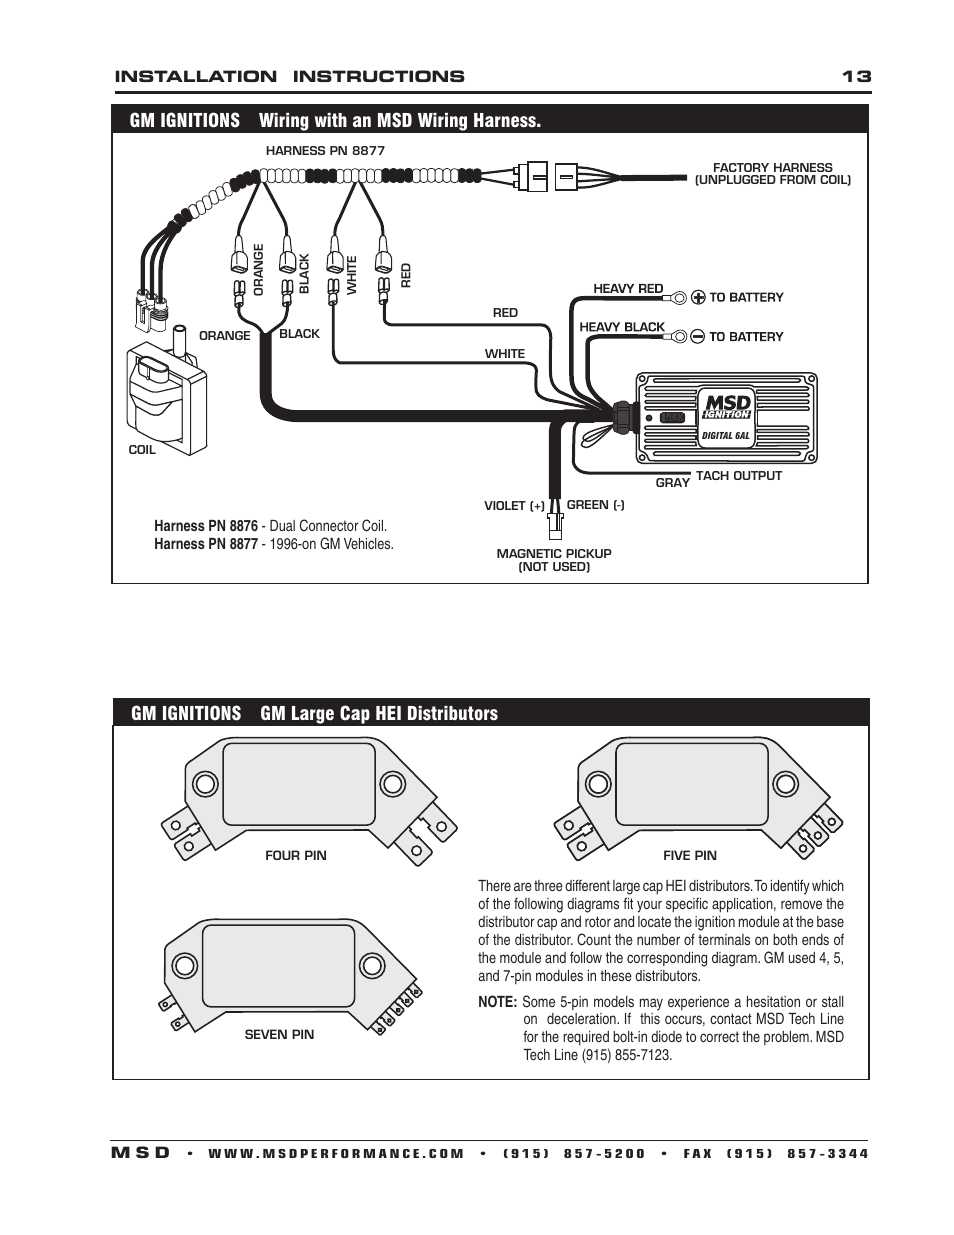 msd 6201 digital 6a ignition control page13?resize\\\\\\\\\\\\\\\\\\\\\\\\\\\\\\\=665%2C861 mesmerizing msd ignition wiring schematic images wiring msd hvc 6600 ignition wiring diagram at creativeand.co